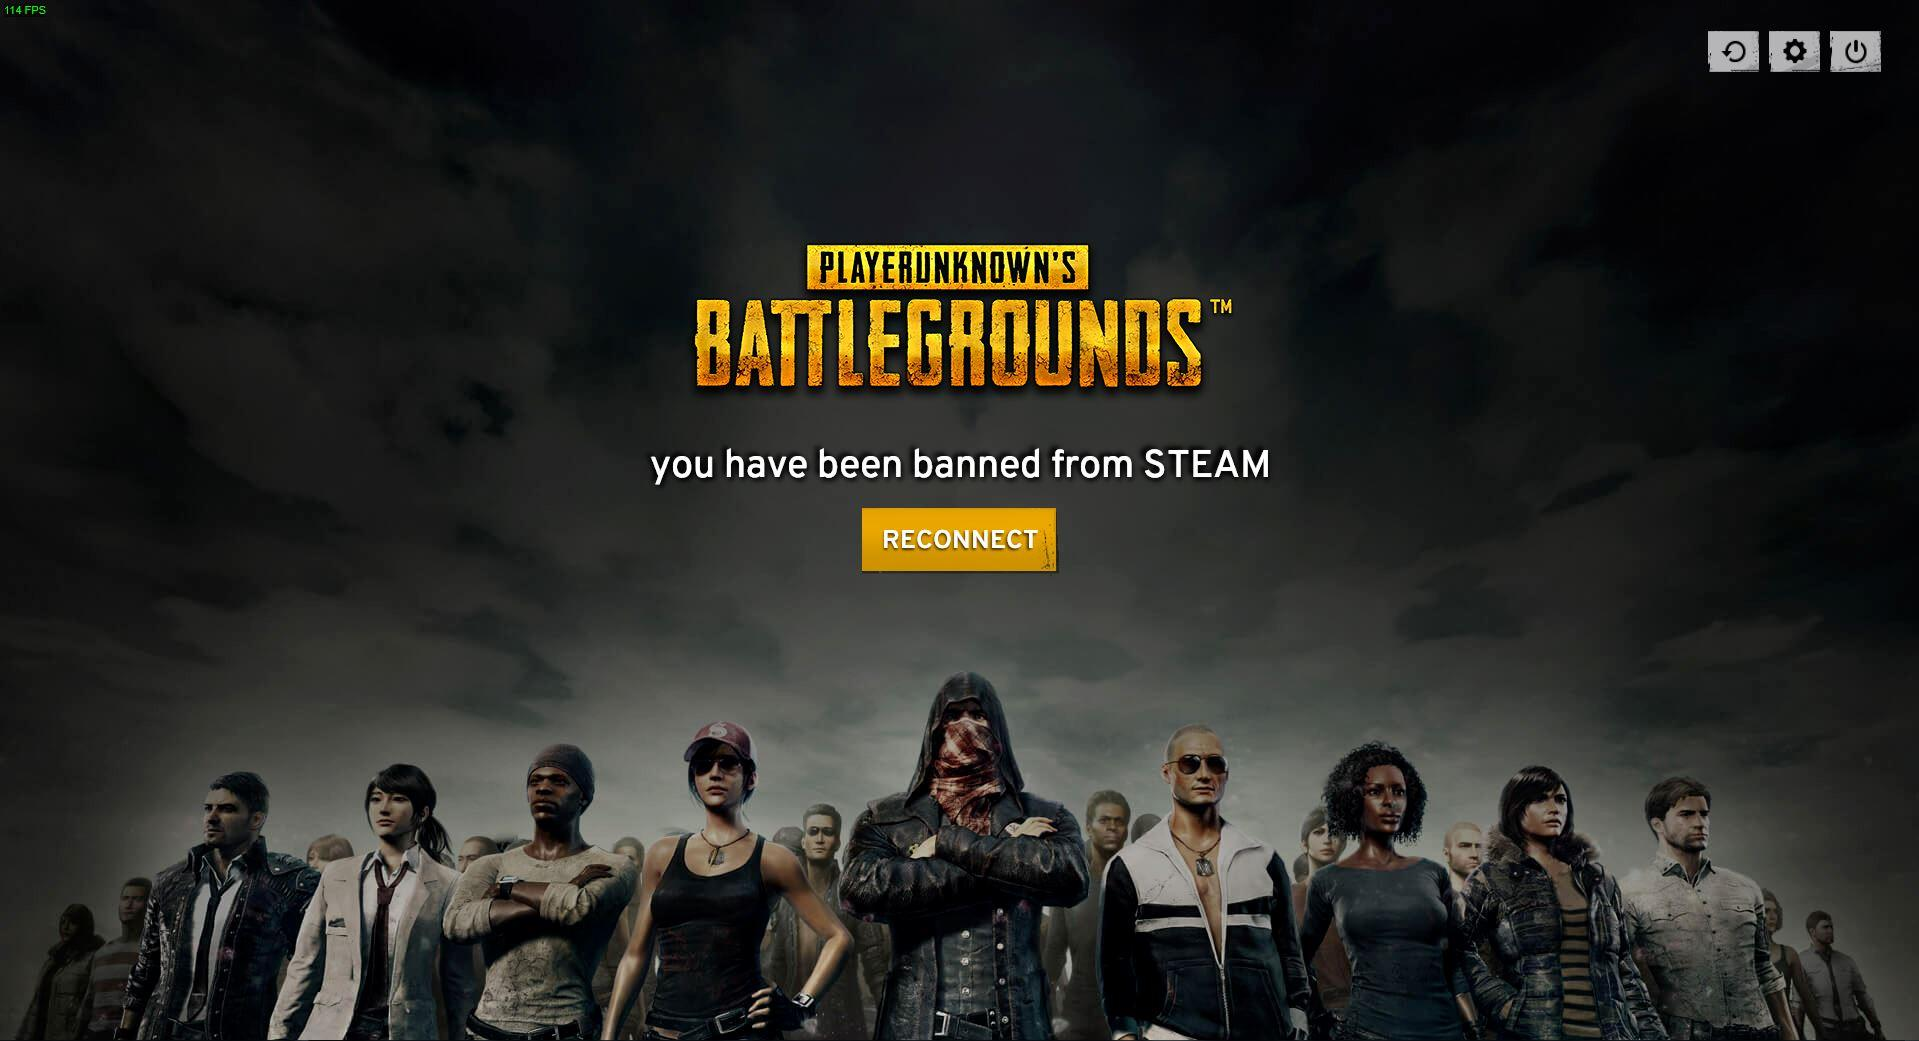 NEED HELP YOU HAVE BEEN BANNED FROM STEAM PUBG